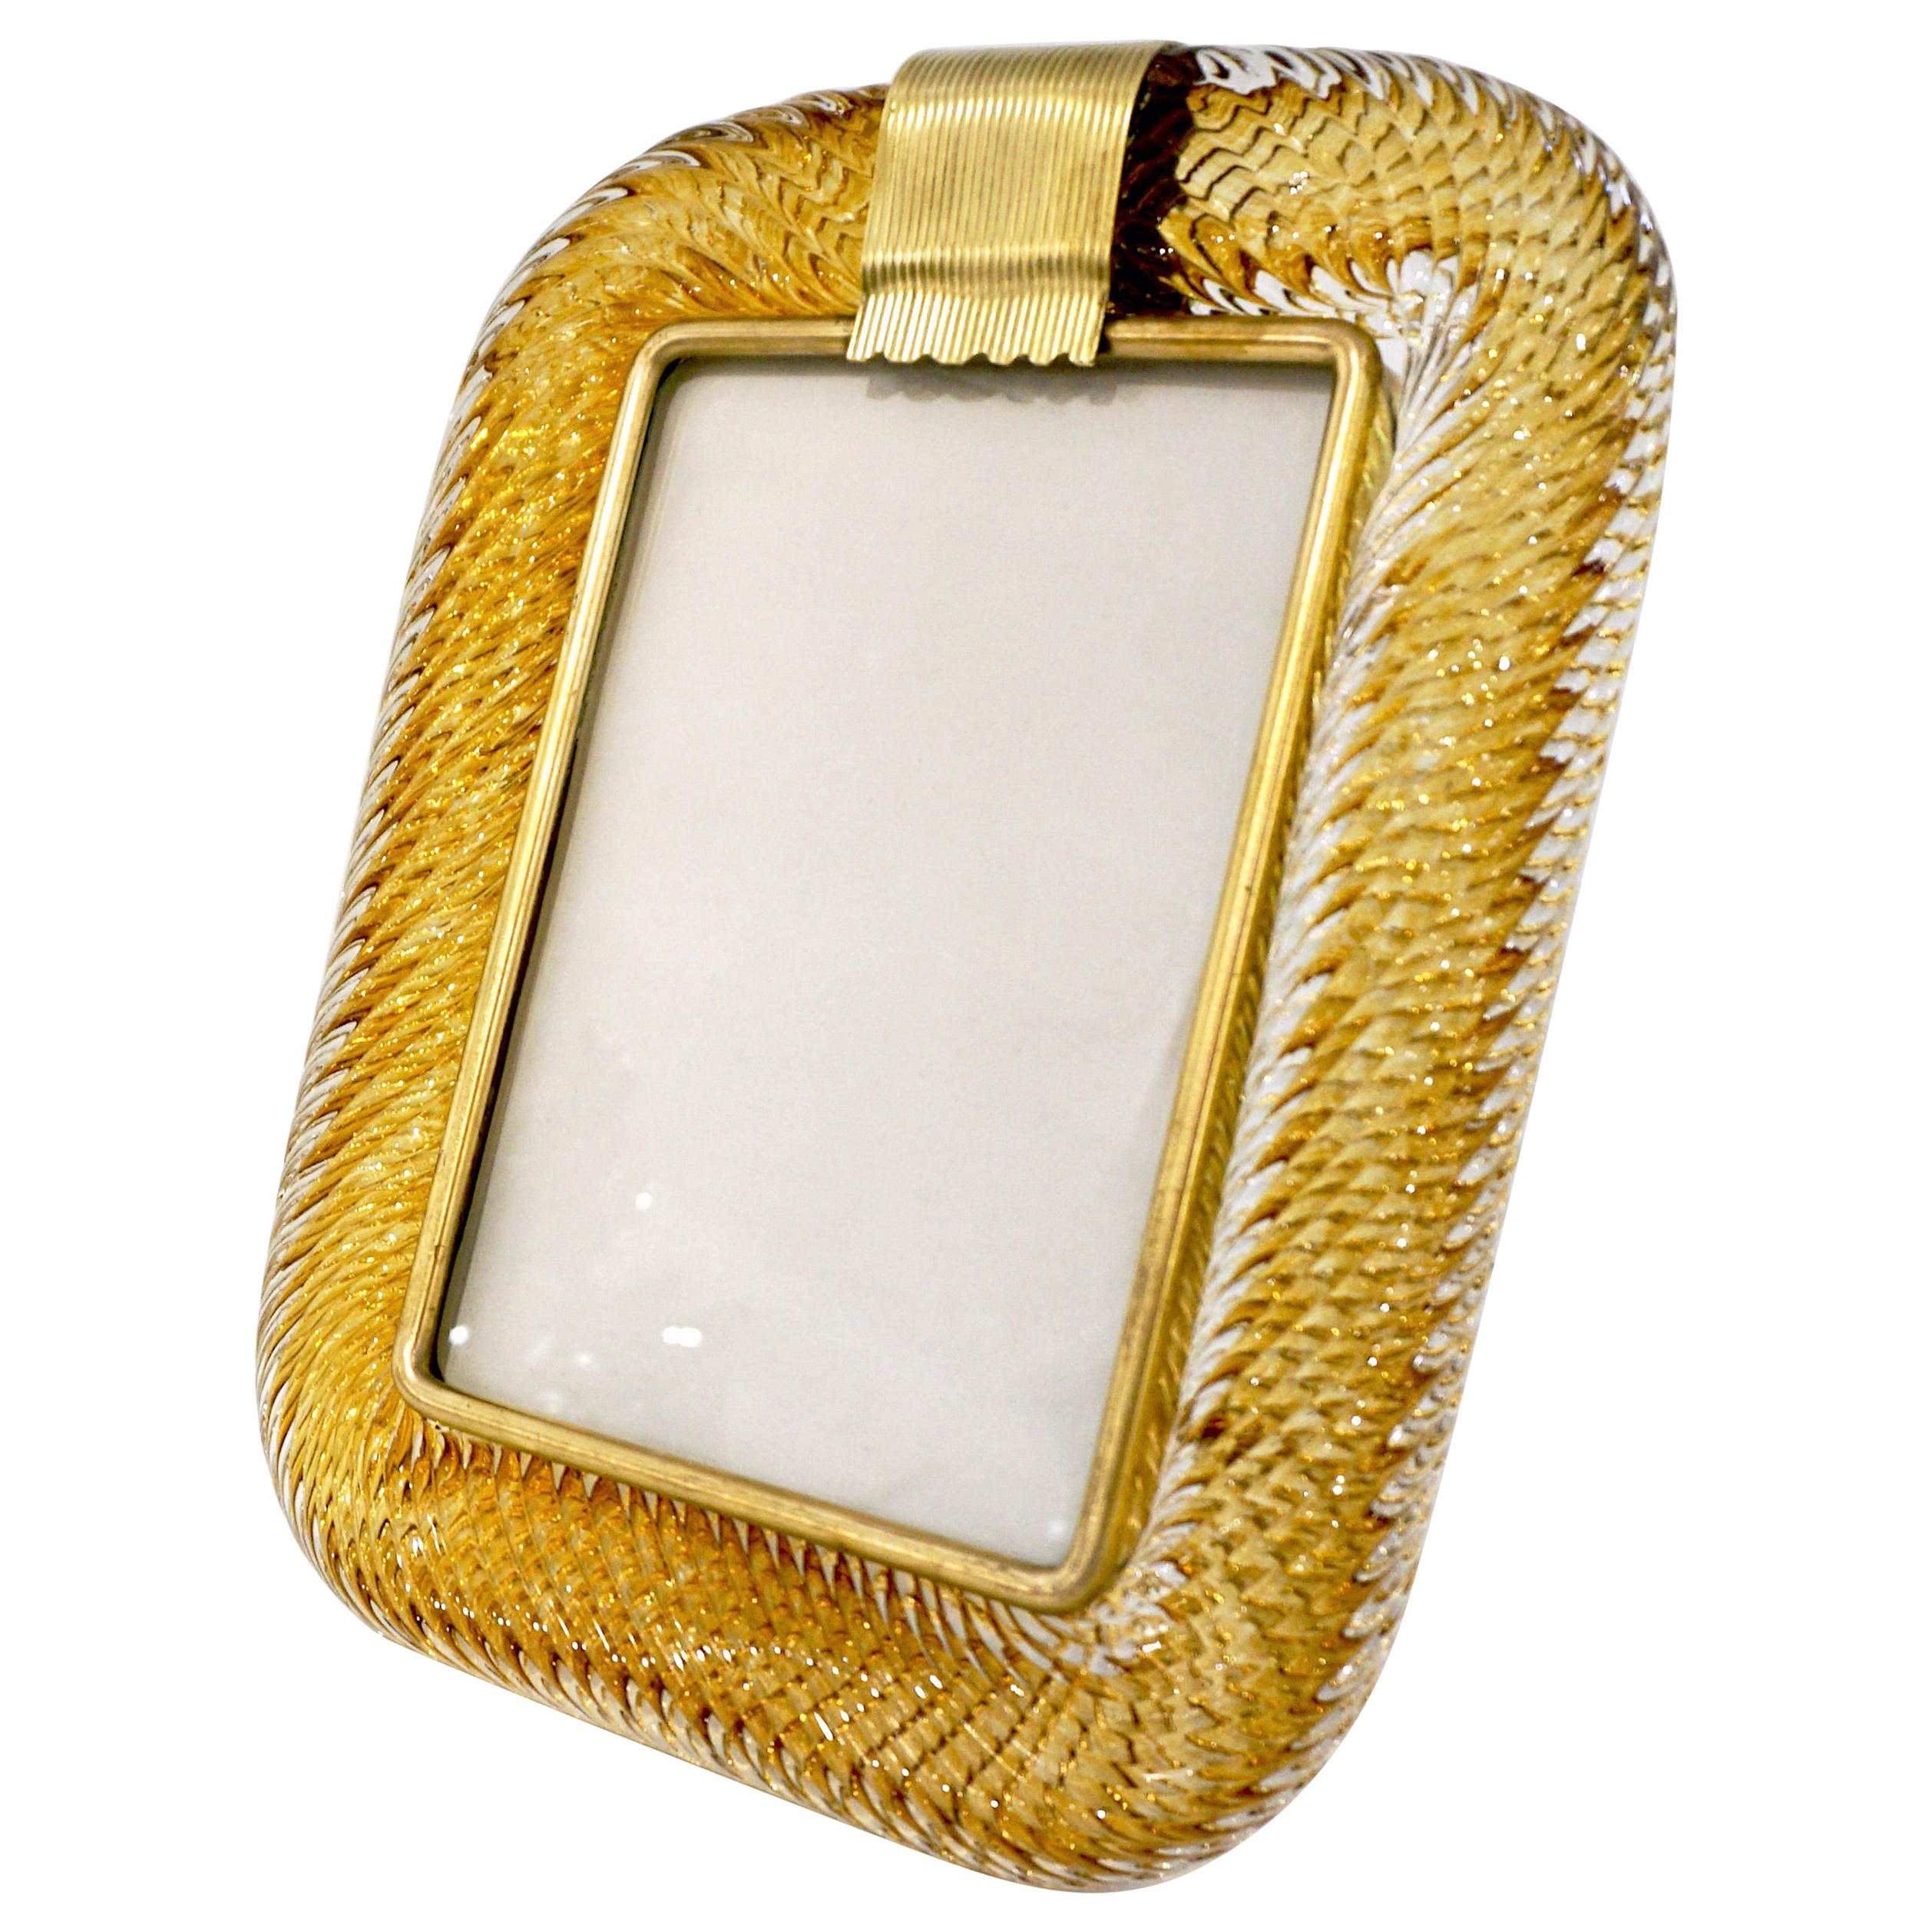 Venini 1980s Italian Vintage Tall Amber Gold Murano Glass and Brass Photo Frame